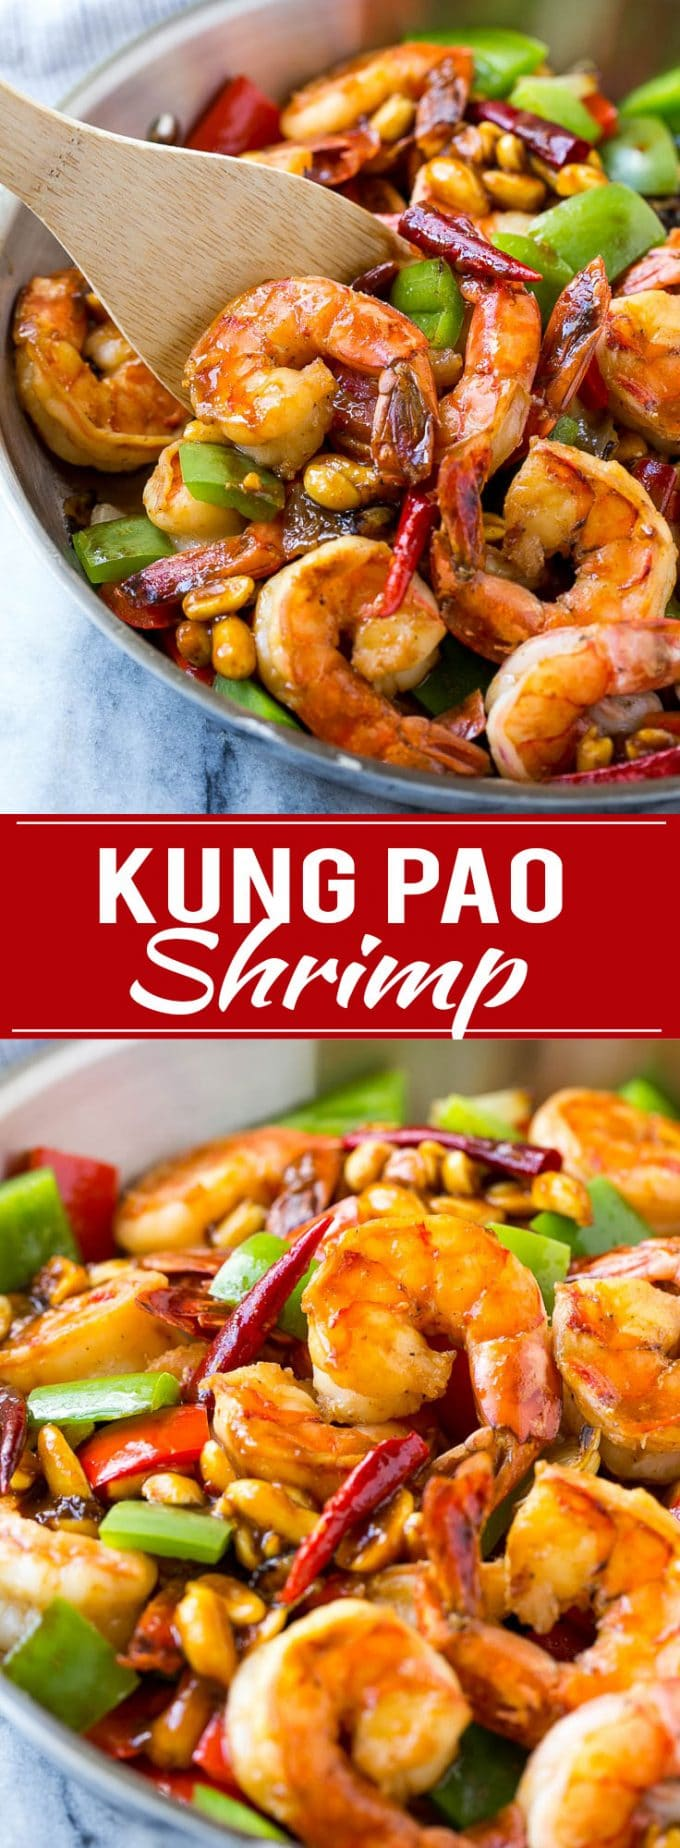 Kung pao shrimp dinner at the zoo What to make with shrimp for dinner